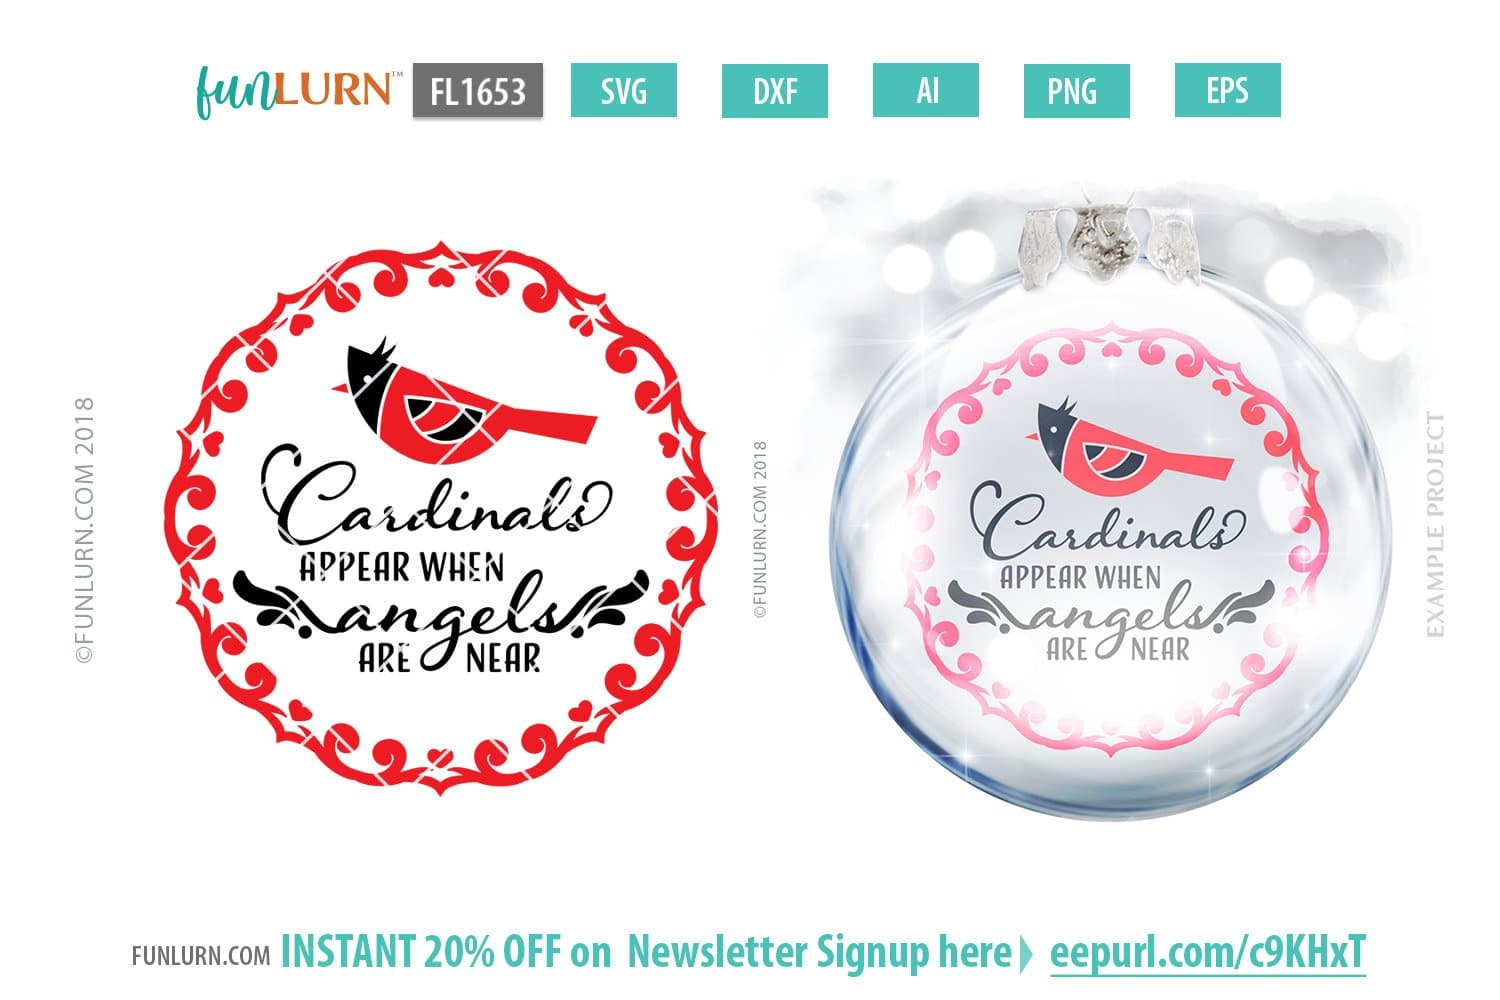 Cardinals Appear When Angels Are Near Svg Cut File Funlurn